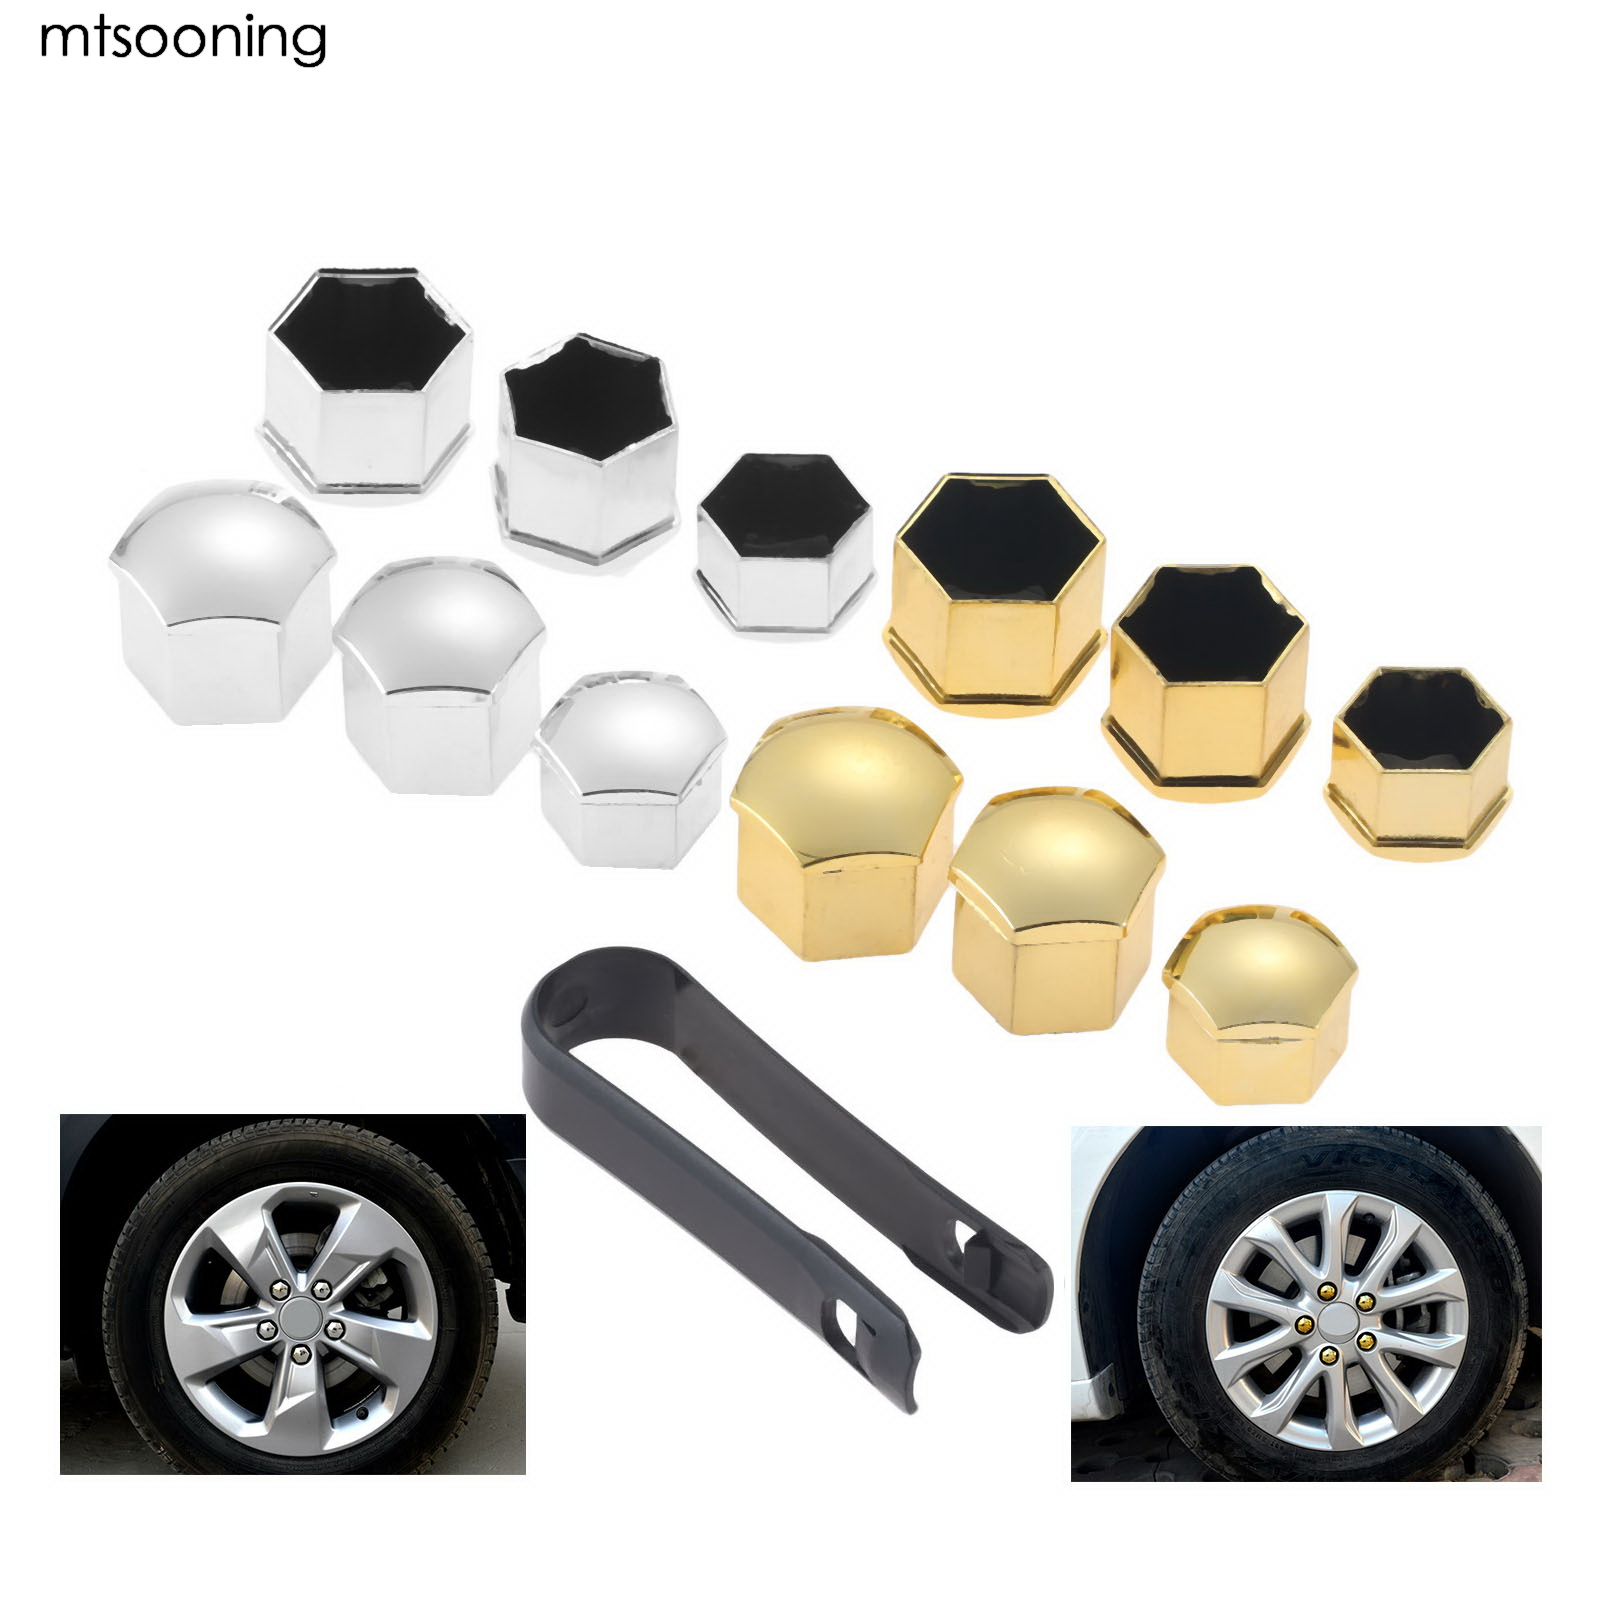 Mtsooning 20Pcs Gray Car Styling Wheel Nut Protection Auto Hub Screw Bolt Head Cover Tire Protector 19mm Plastic Remover Tool